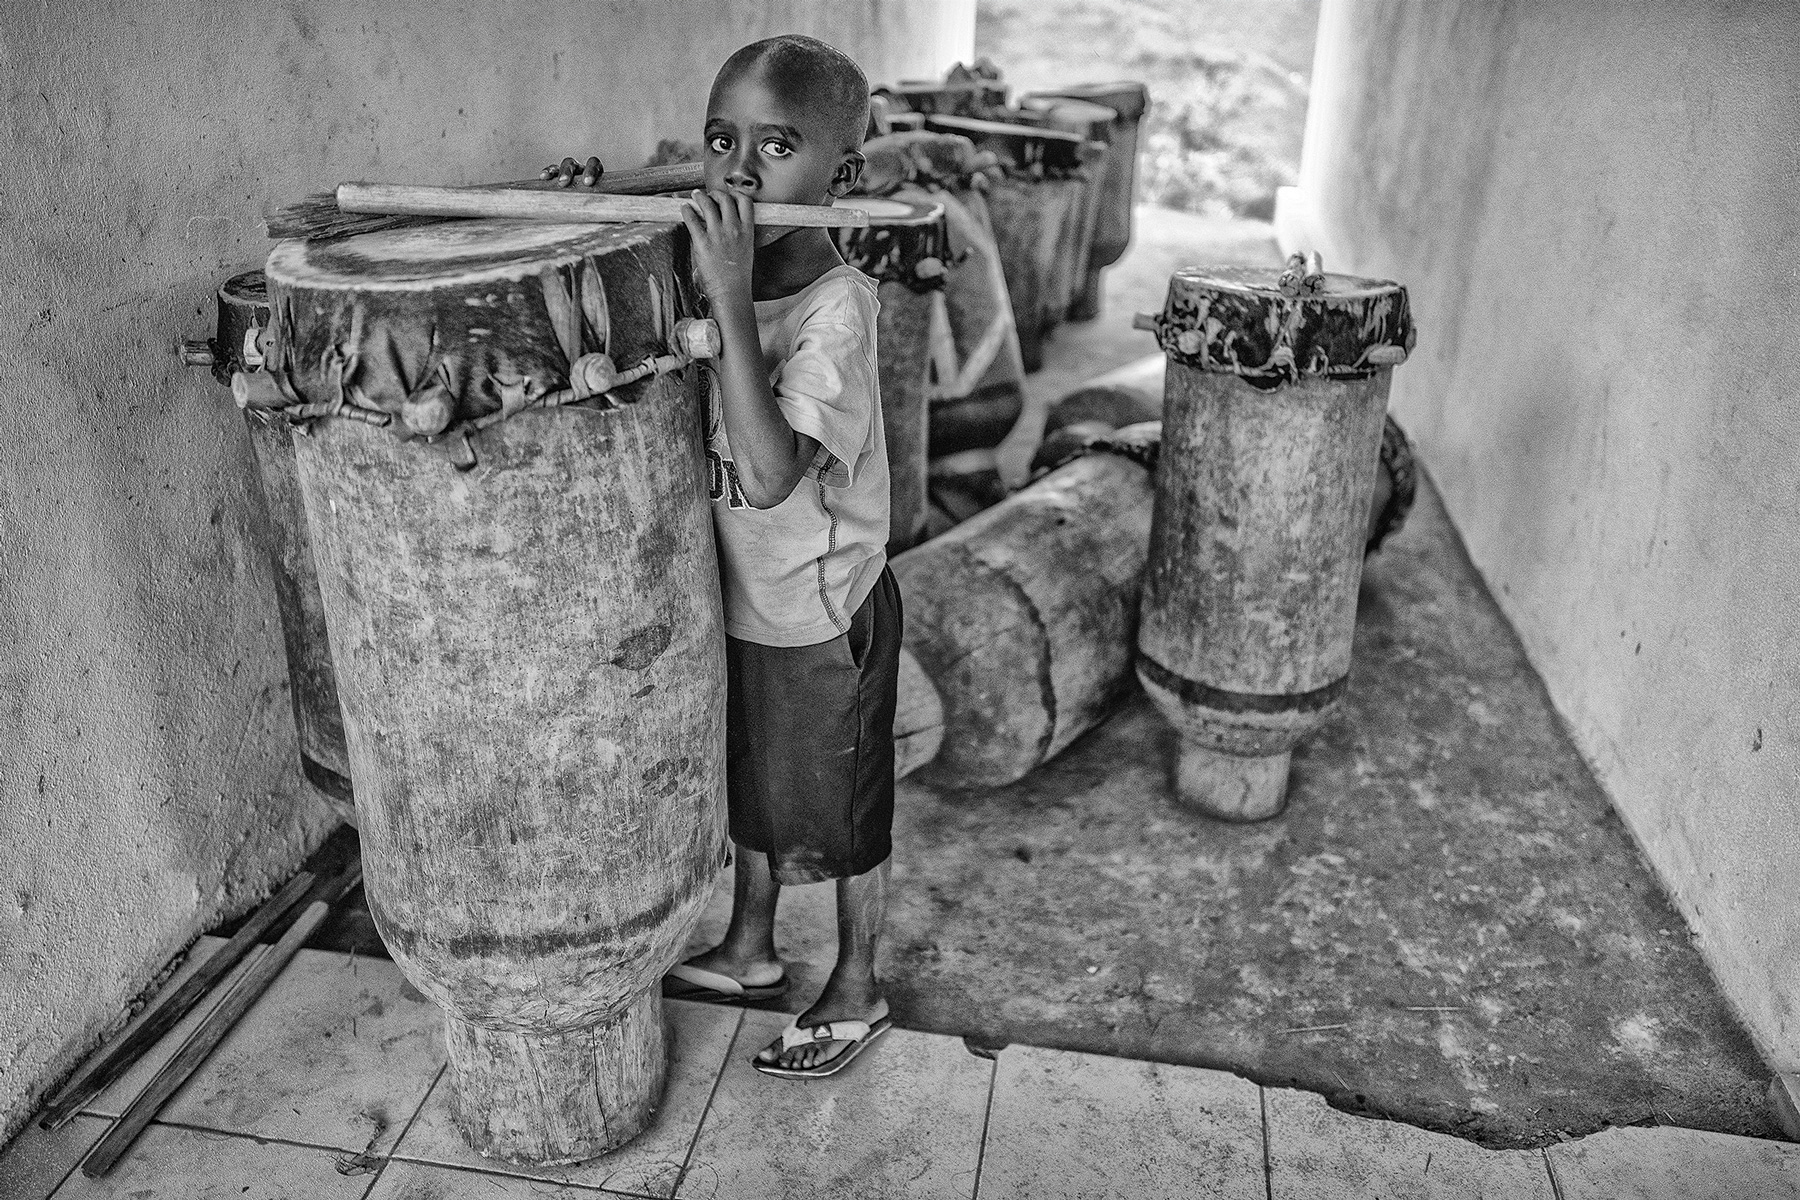 William_Bullard_The Kigutu Portraits_Brother's Drum_3.jpg